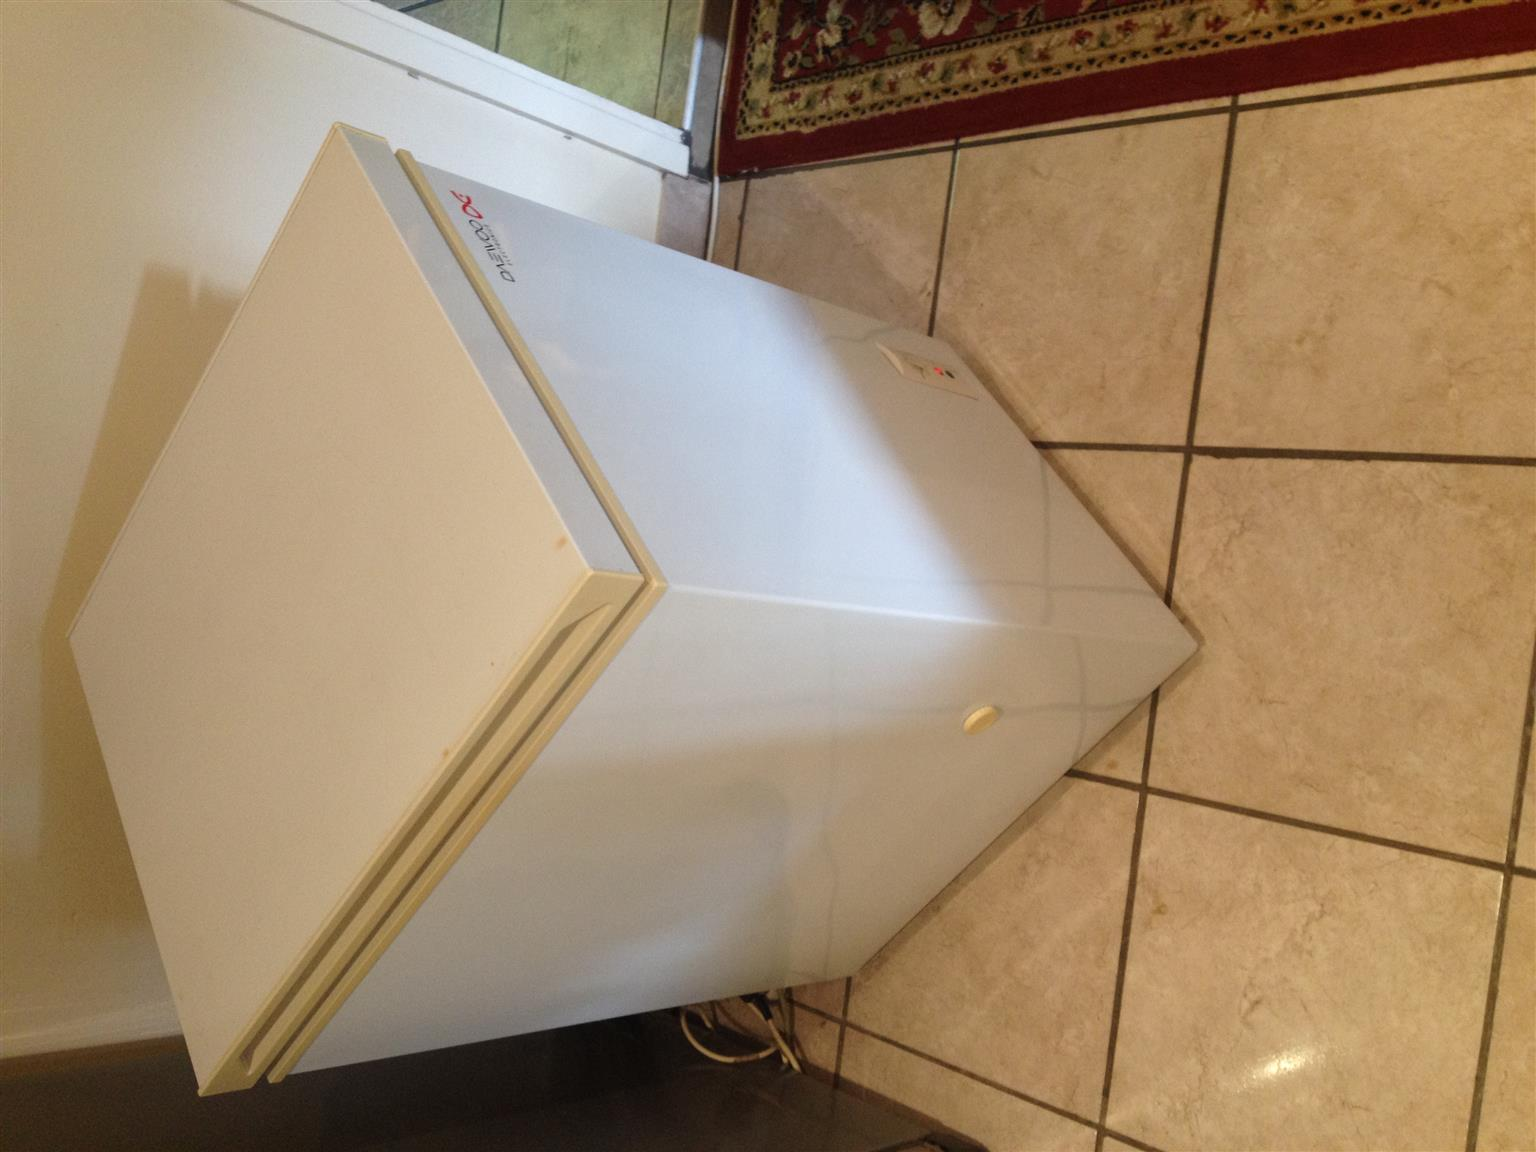 DAWOO ELECTRONICS CHEST FREEZER IN EXCELENT CONDITION & WORKING ORDER